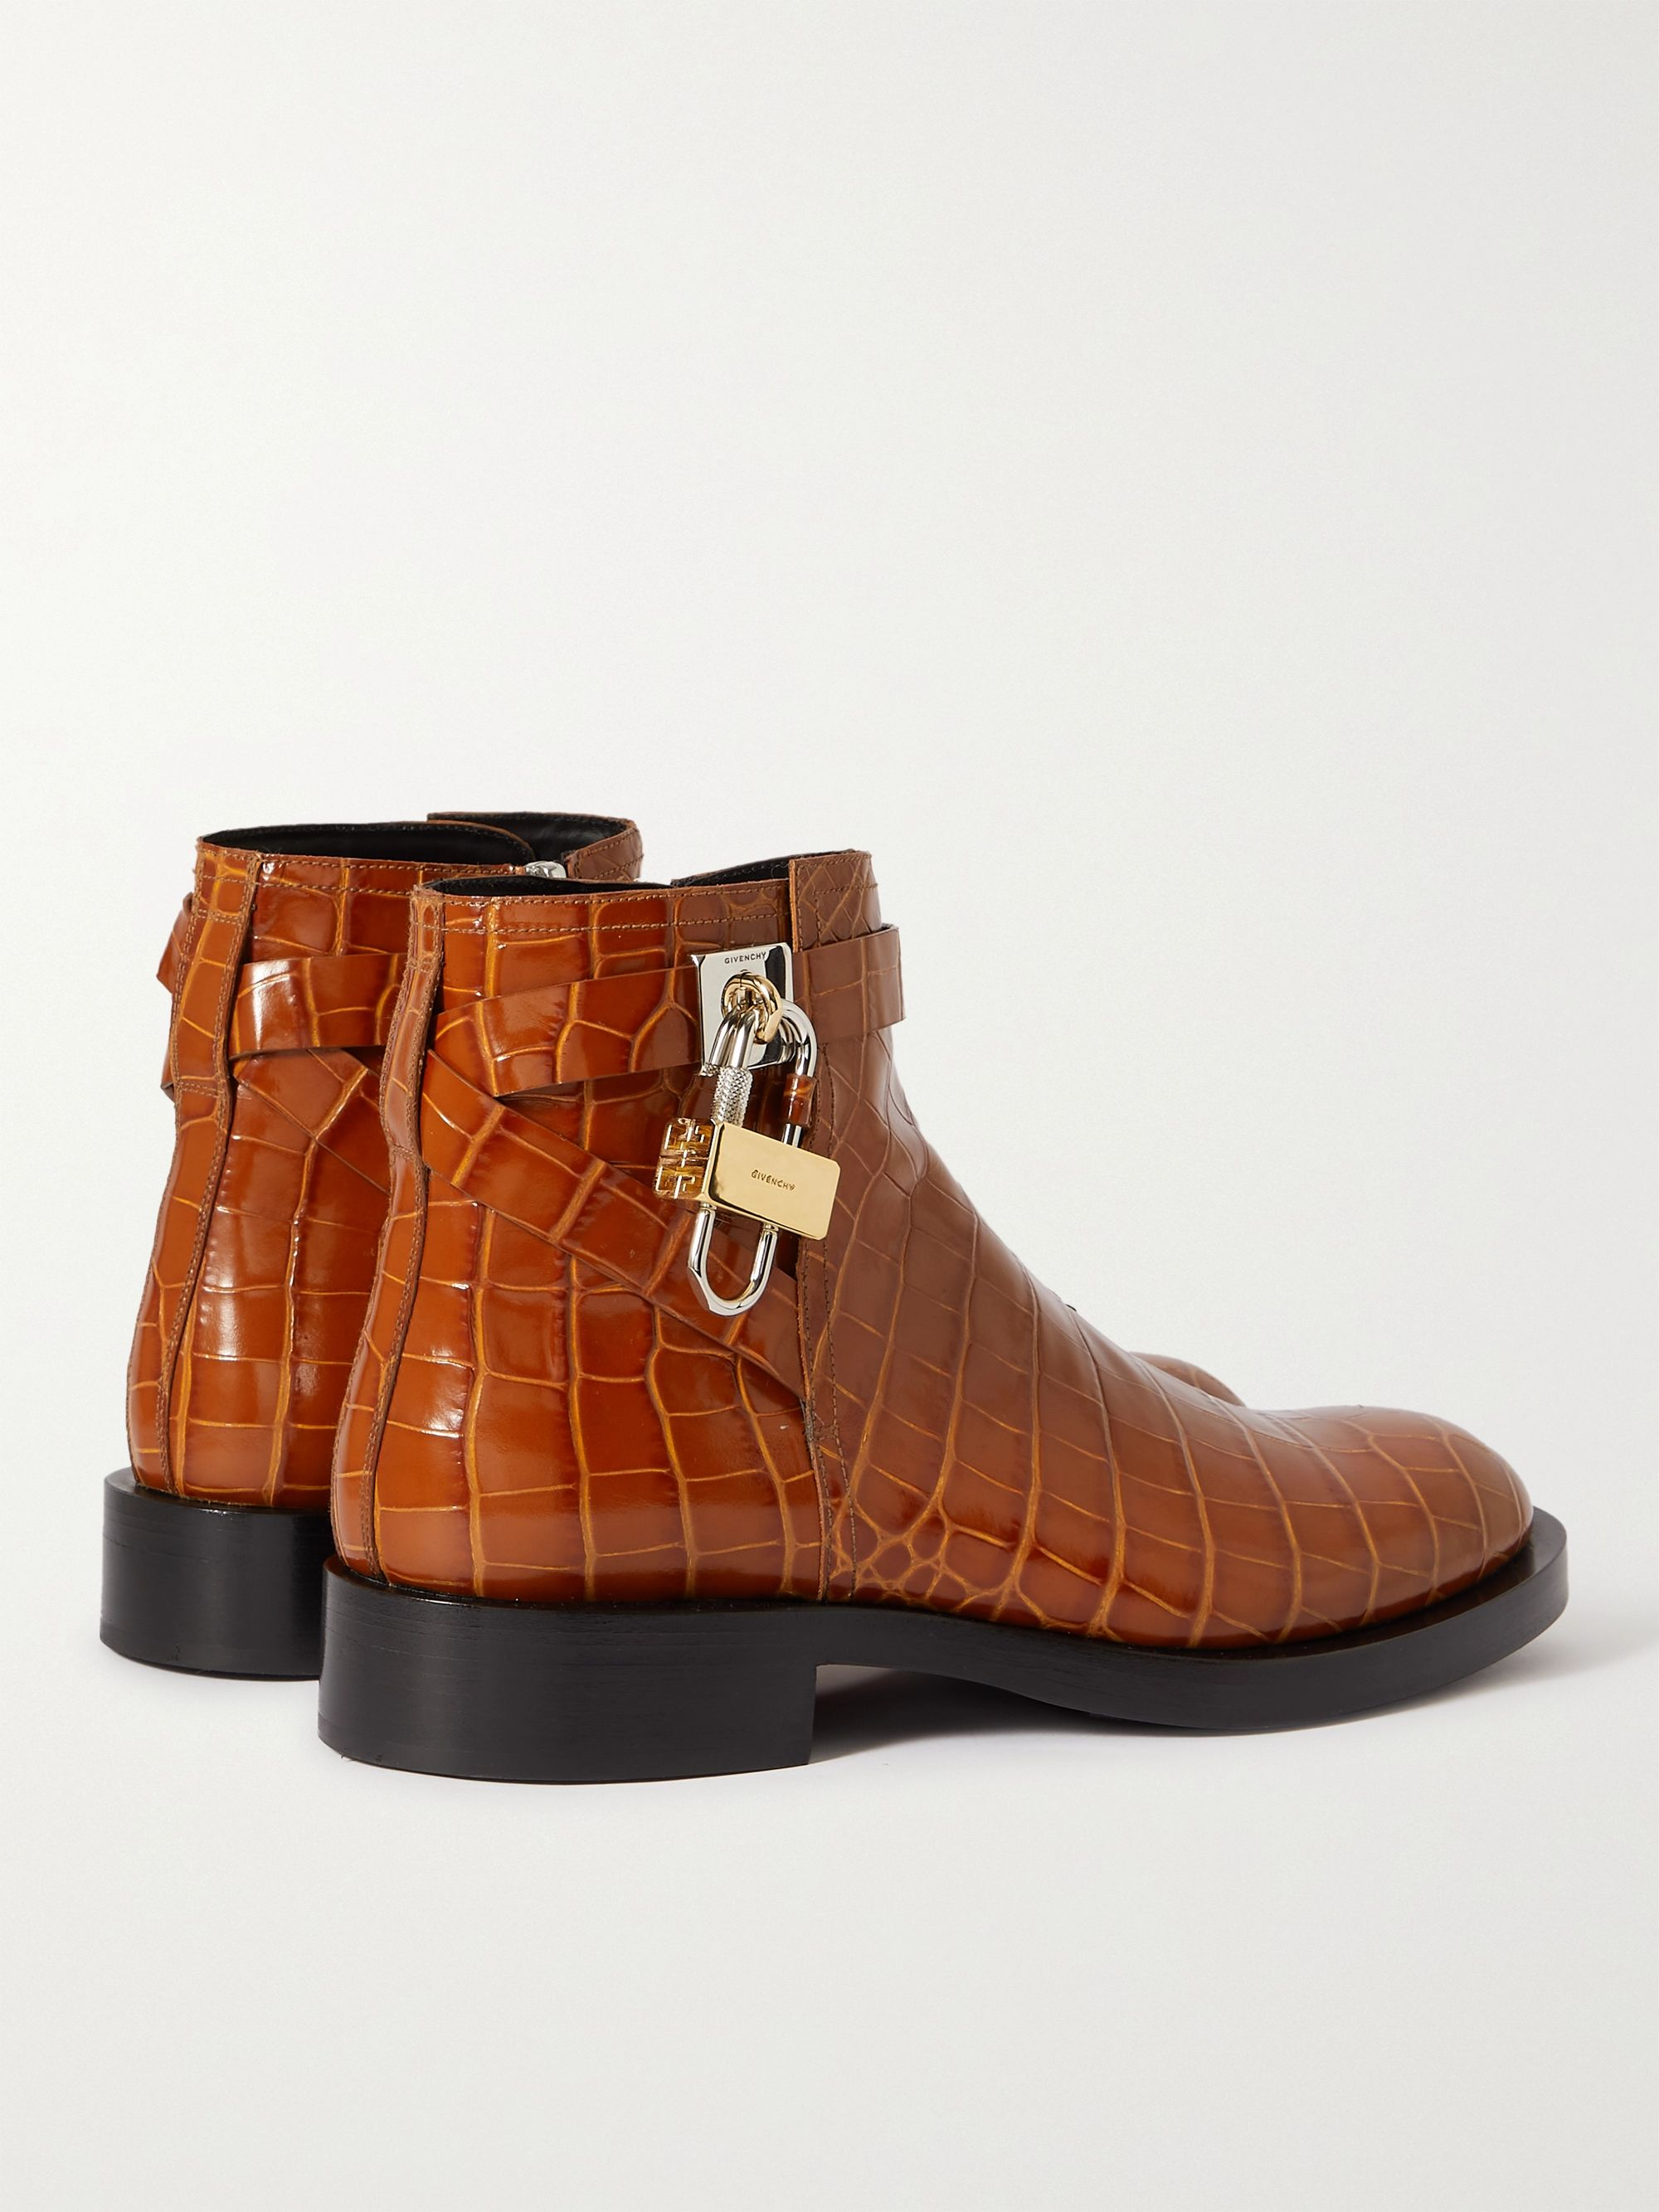 GIVENCHY Embellished Croc-Effect Leather Chelsea Boots